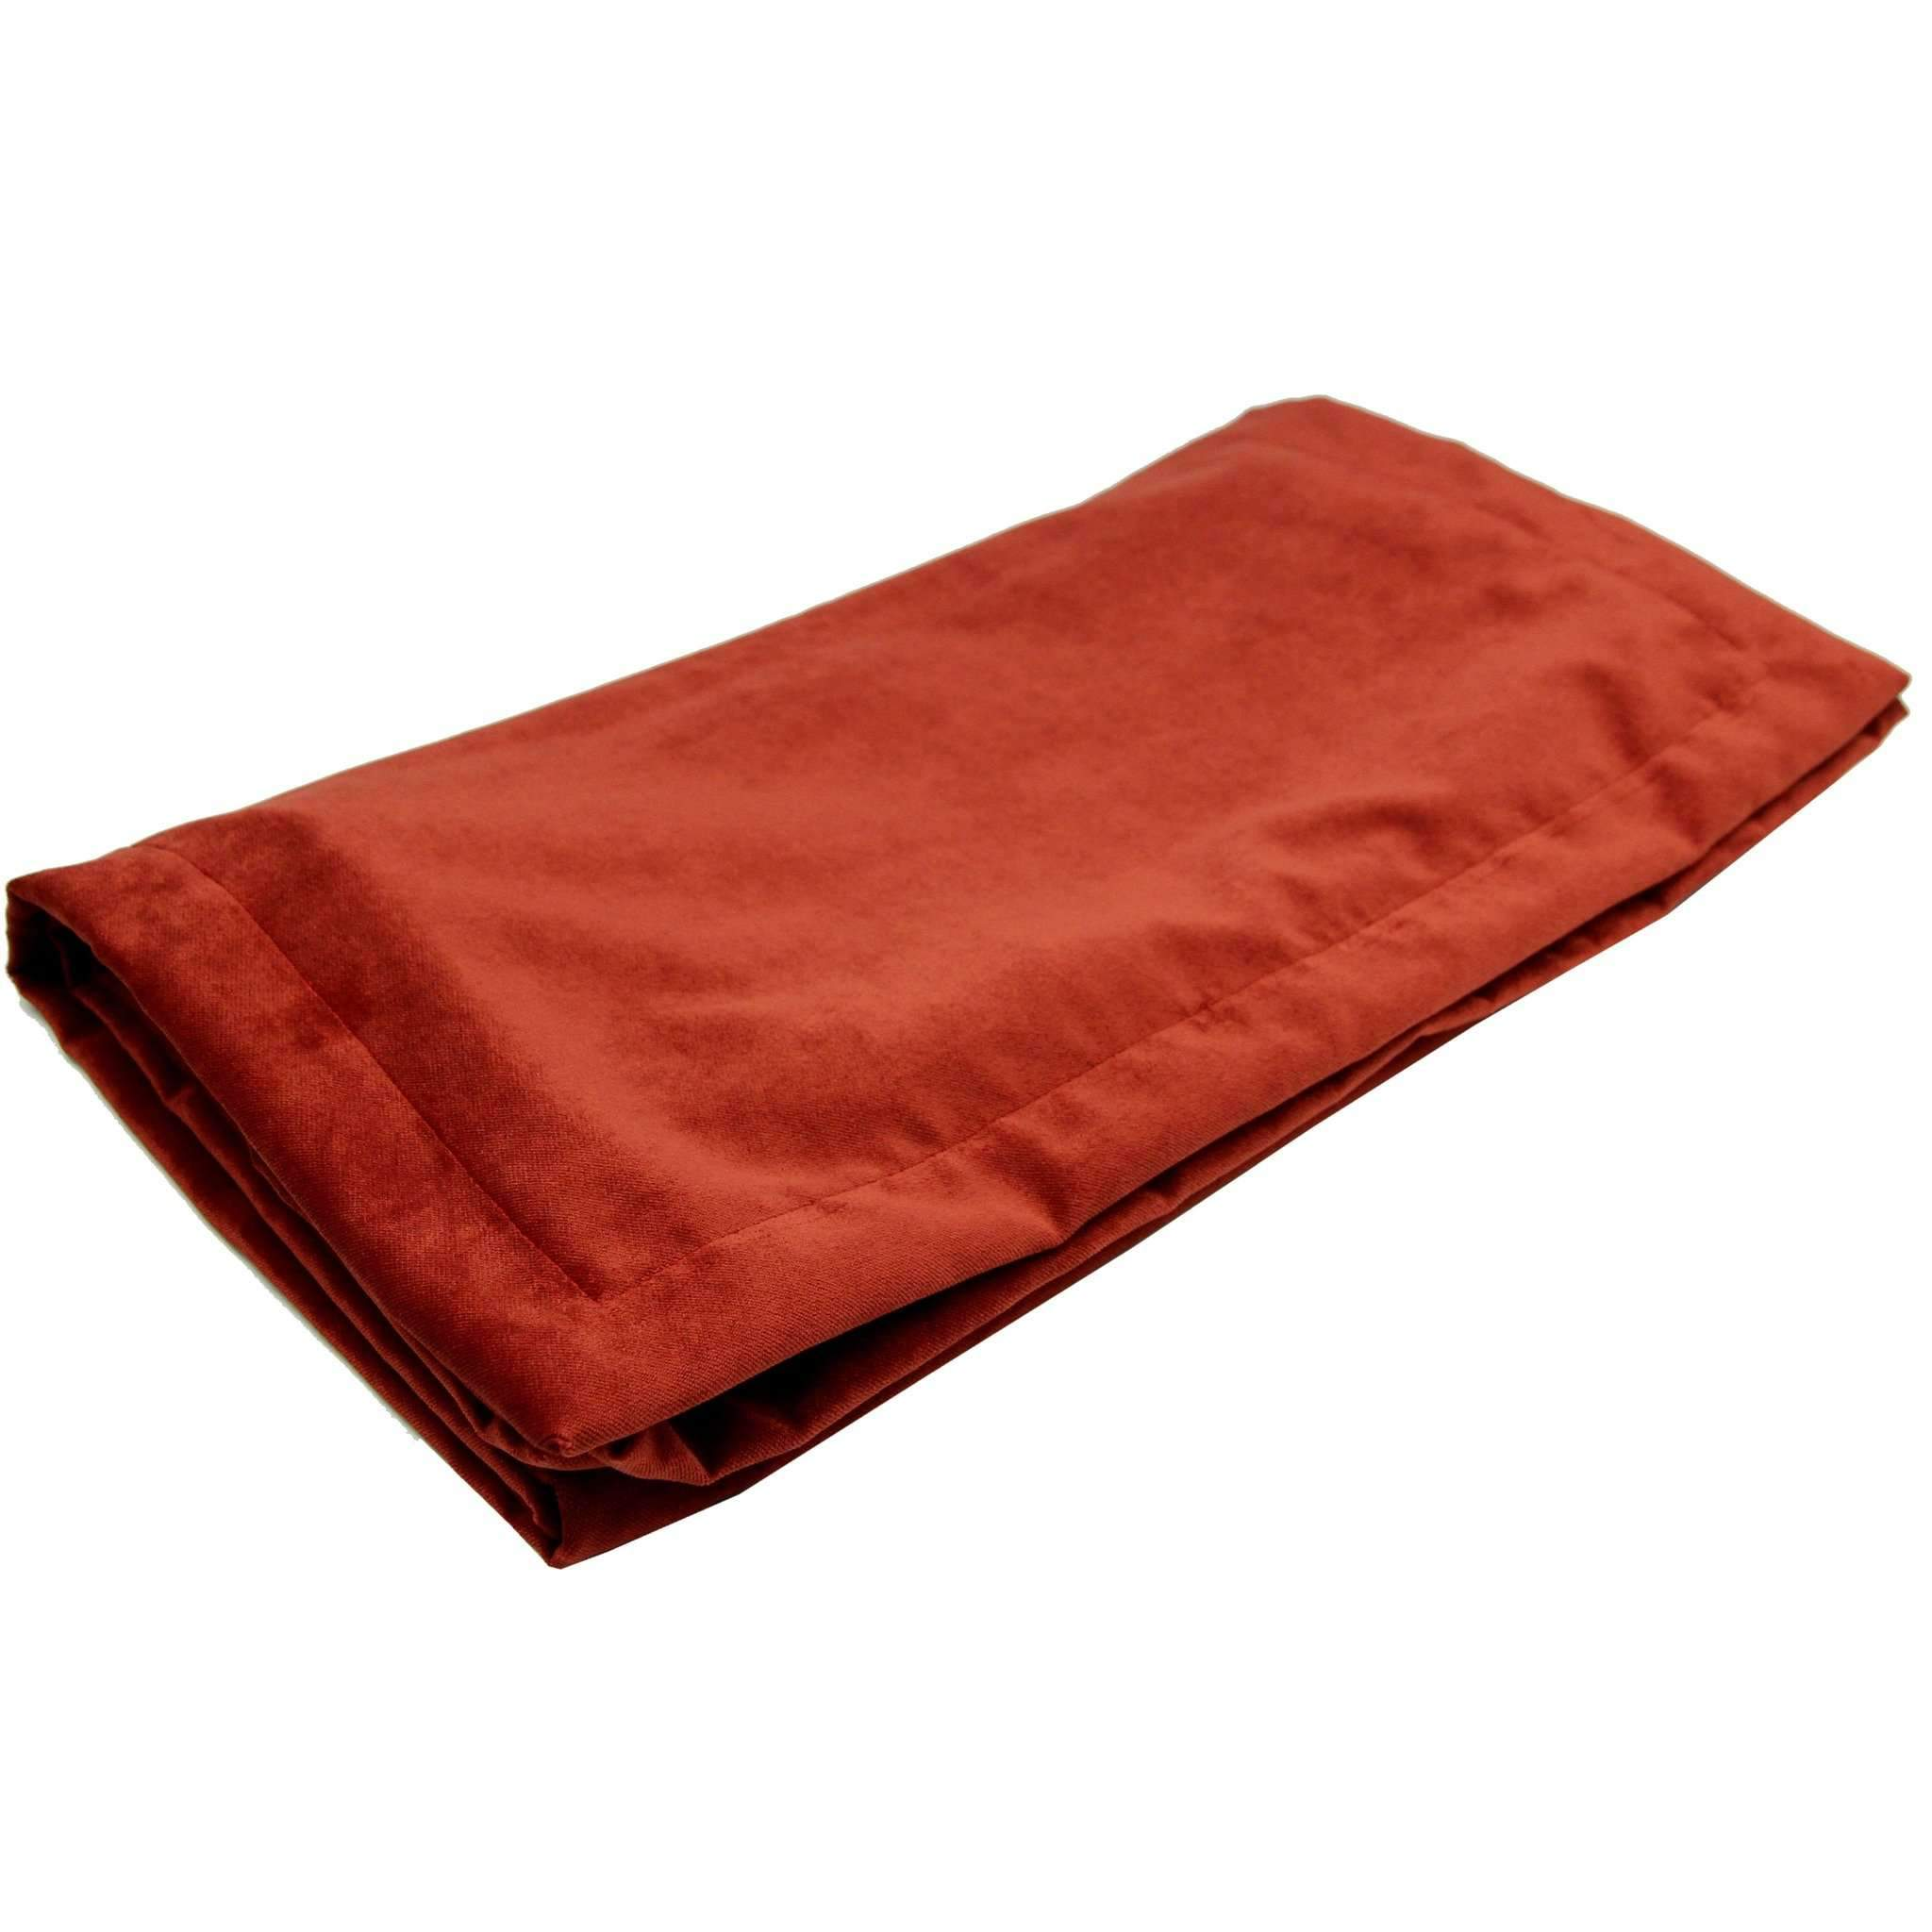 McAlister Textiles Matt Rust Red Orange Velvet Throw Blankets & Runners Throws and Runners Bed Runner (50cm x 240cm)